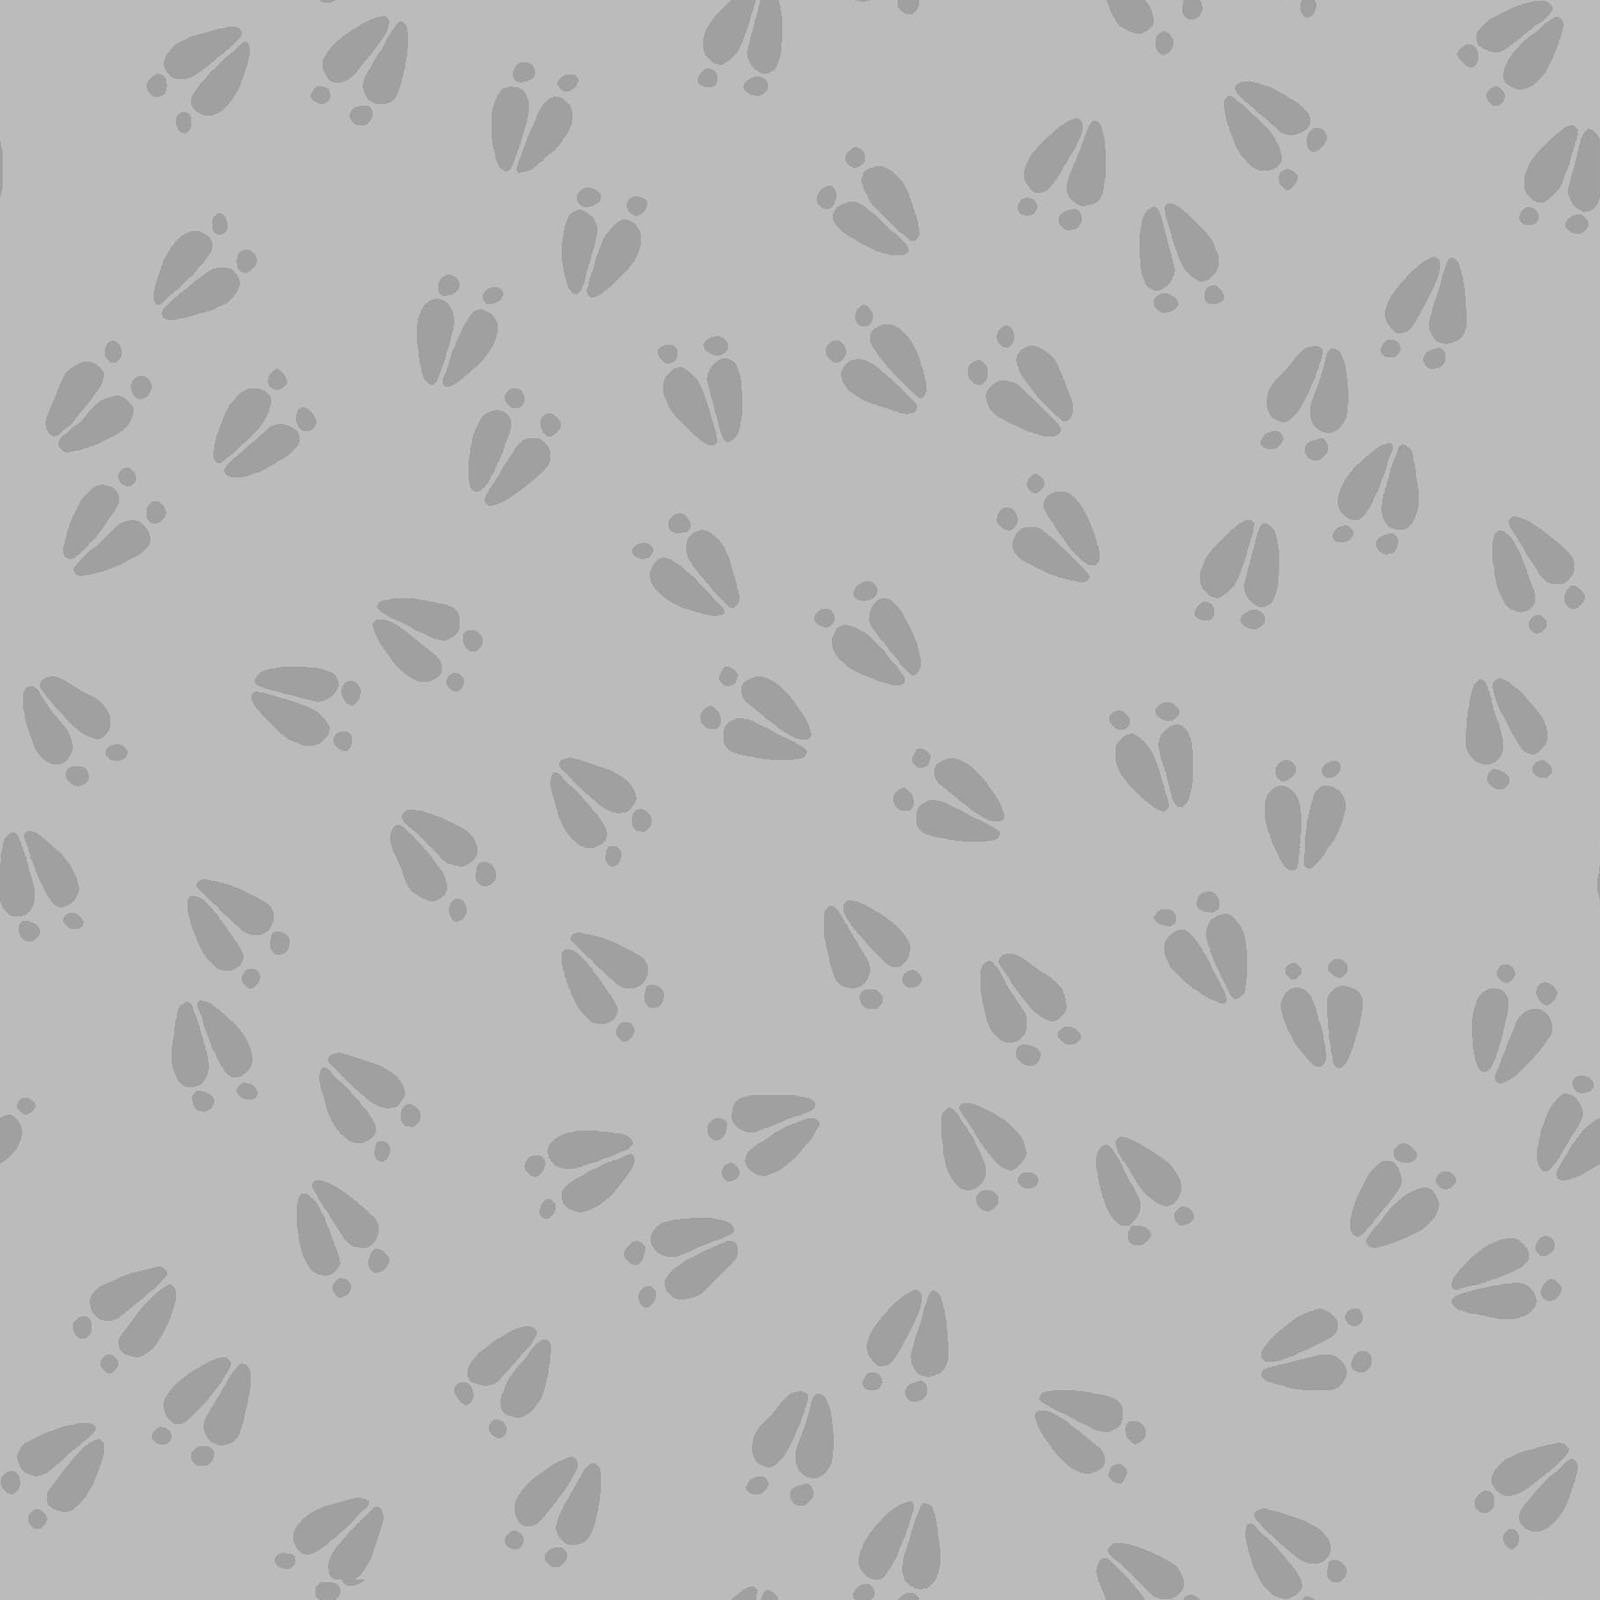 LITC-4298 S - LITTLE CRITTERS BY ROBIN RODERICK ANIMAL PRINT GREY